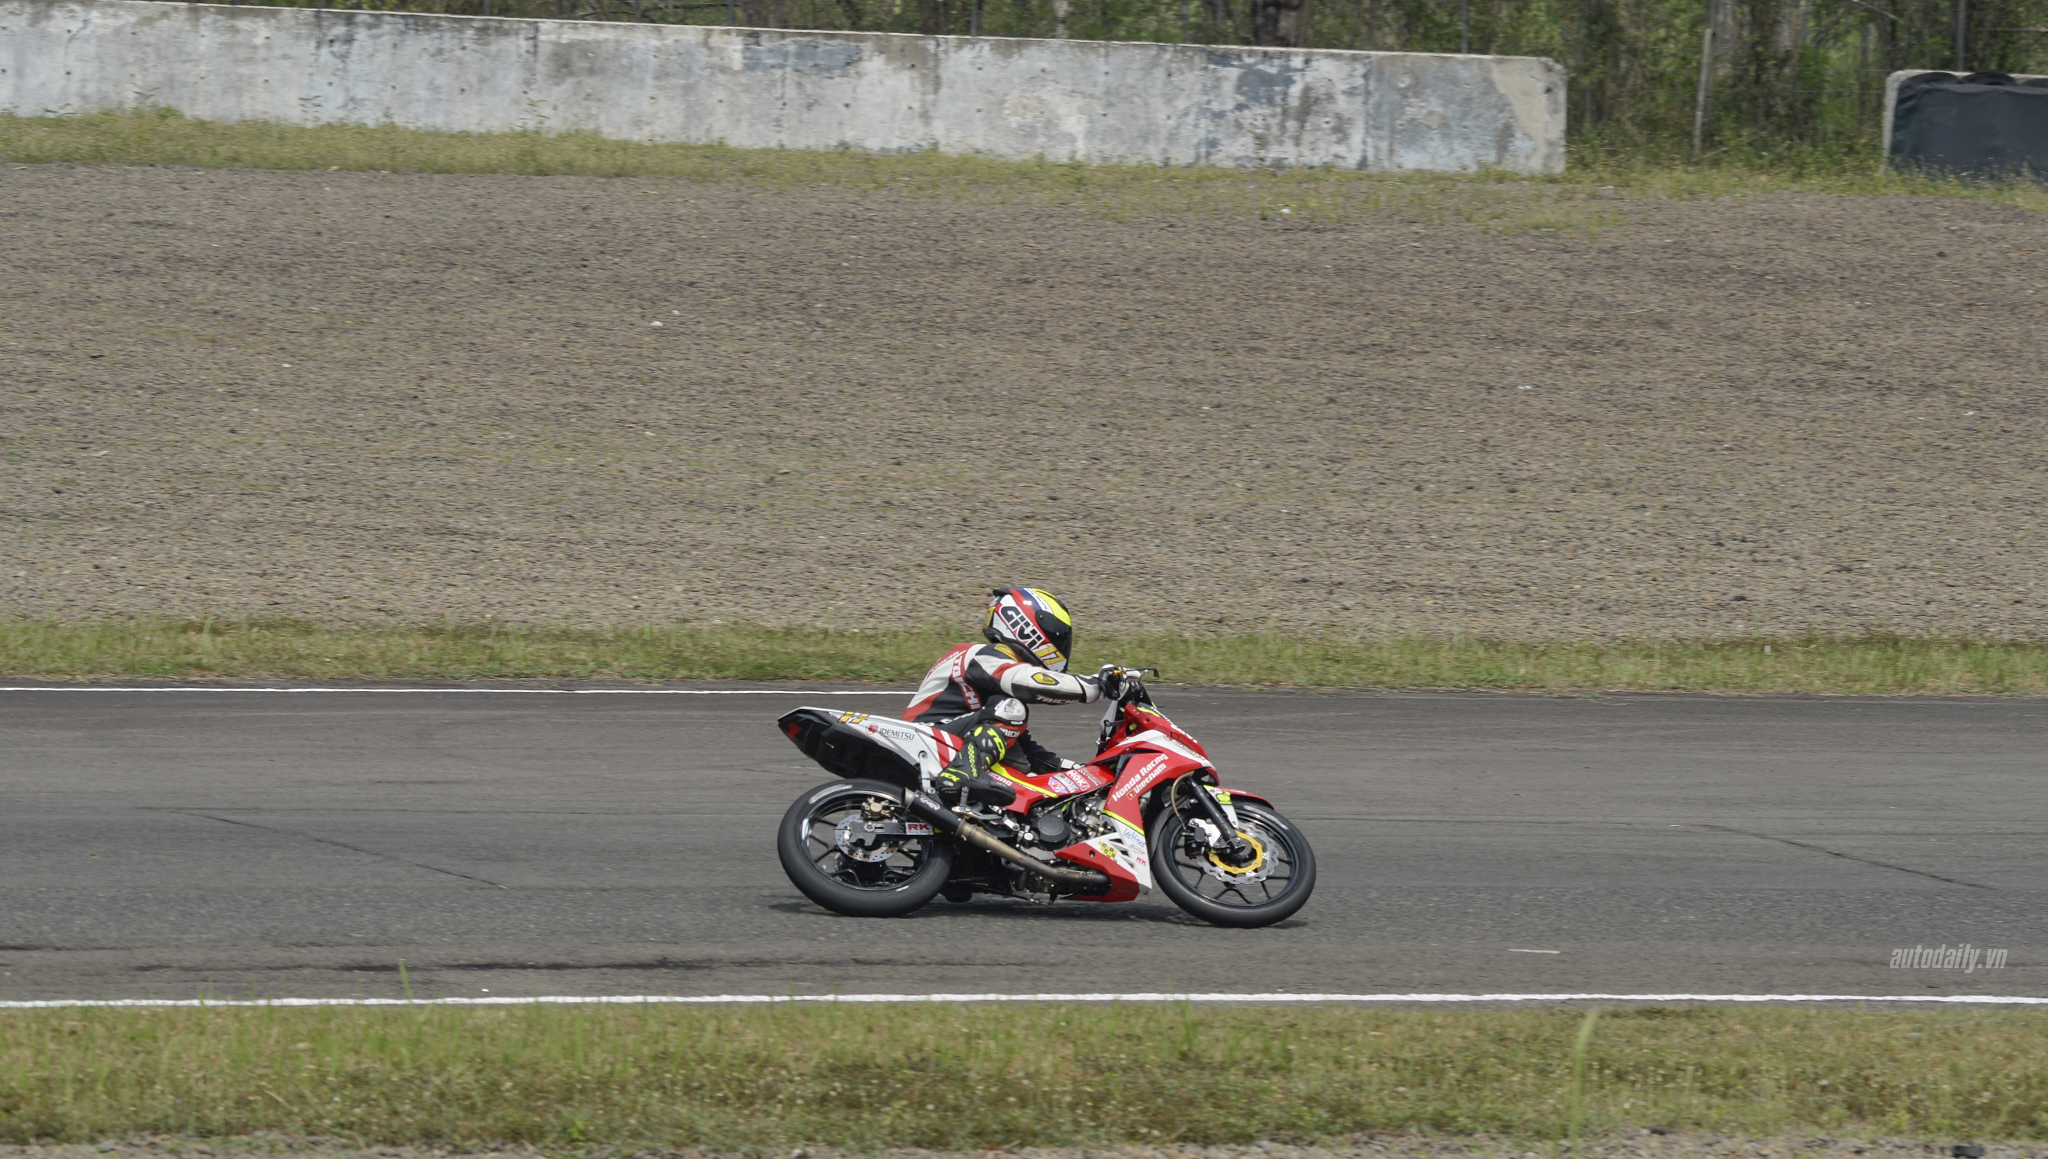 honda-racing-vn-dsc8139-copy.jpg